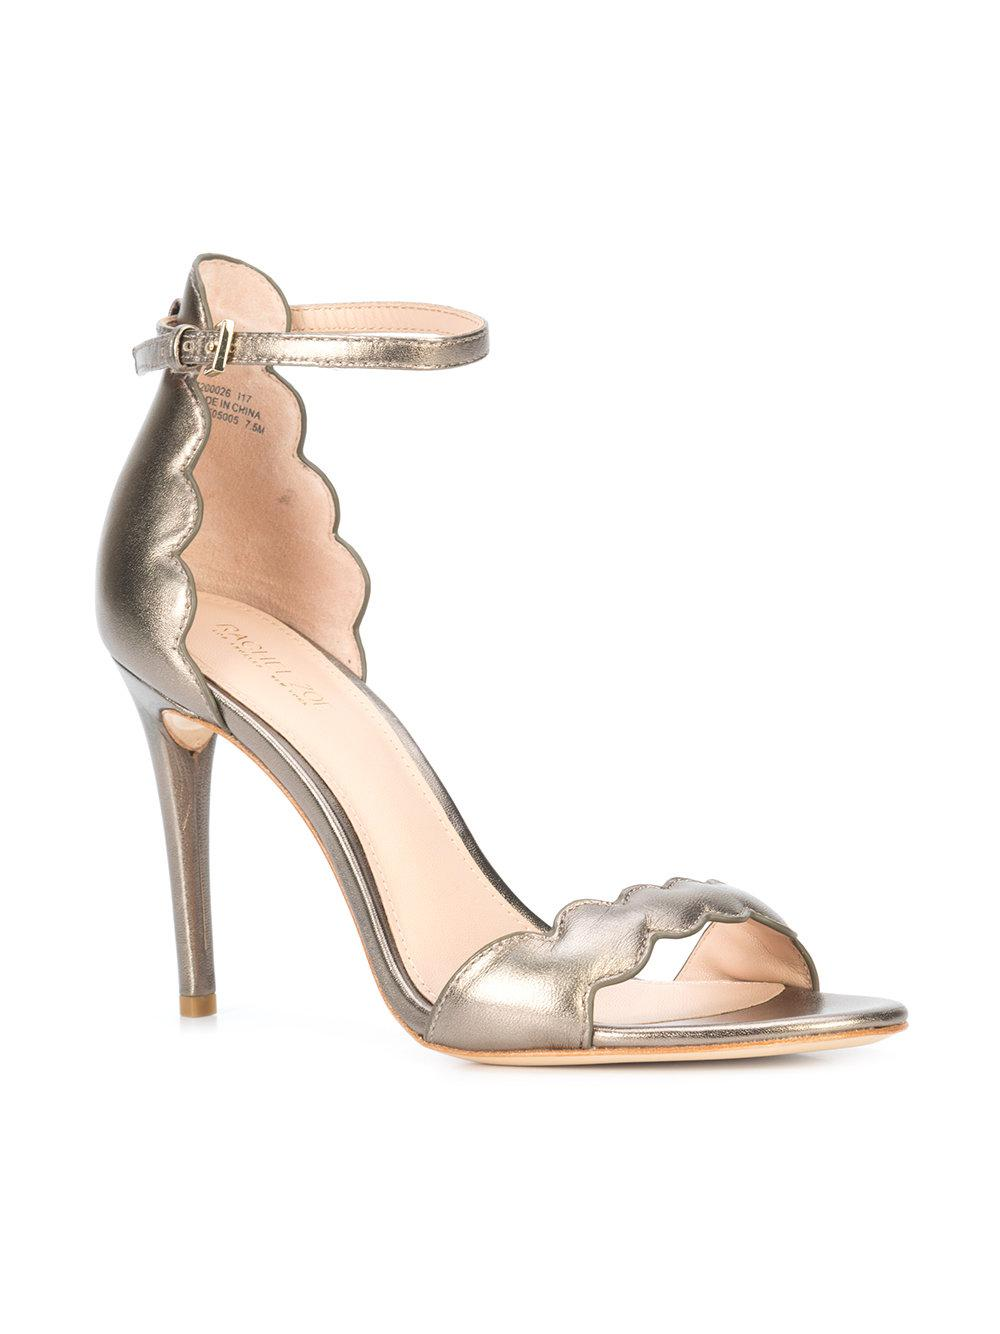 Rachel Zoe Scalloped open toe sandals Low Price Cheap Online AwCaC